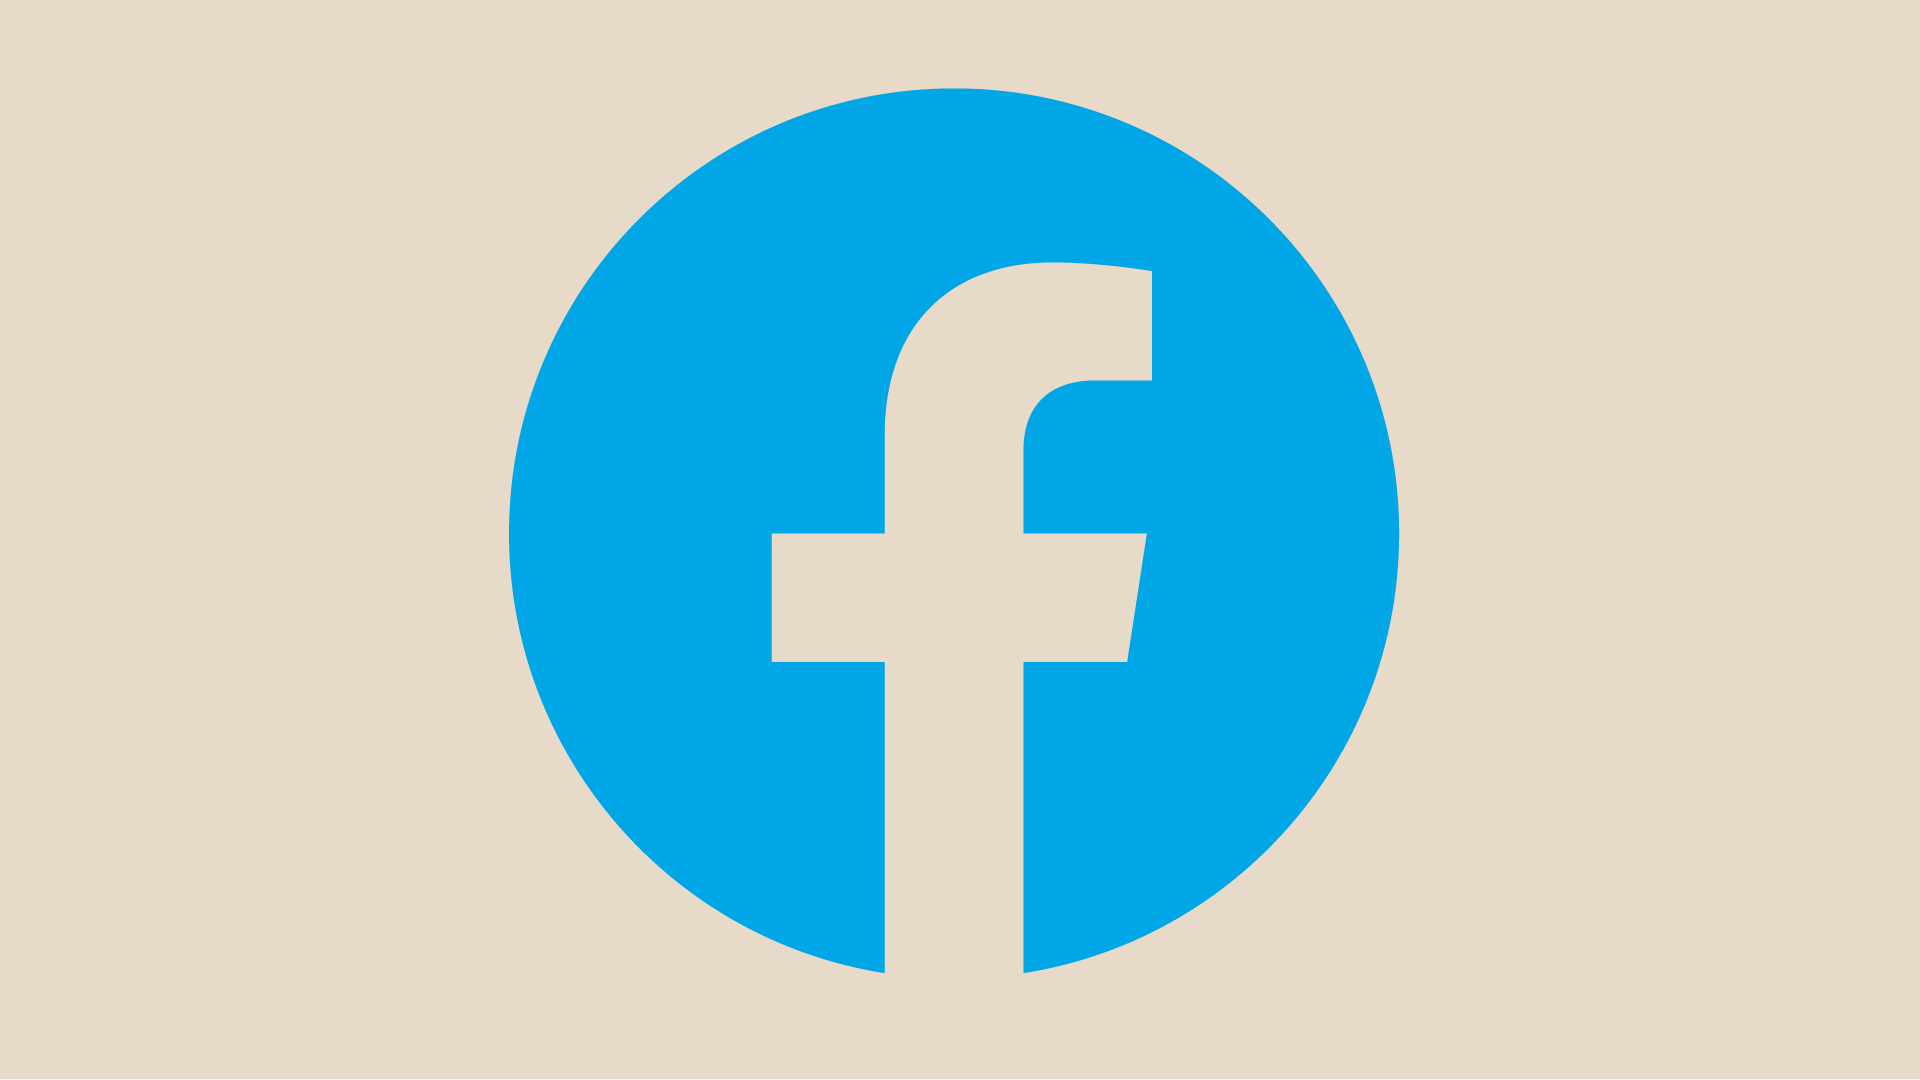 facebook - Our facebook group is a great place to share events, connect with colleages, or promote things you are working on!